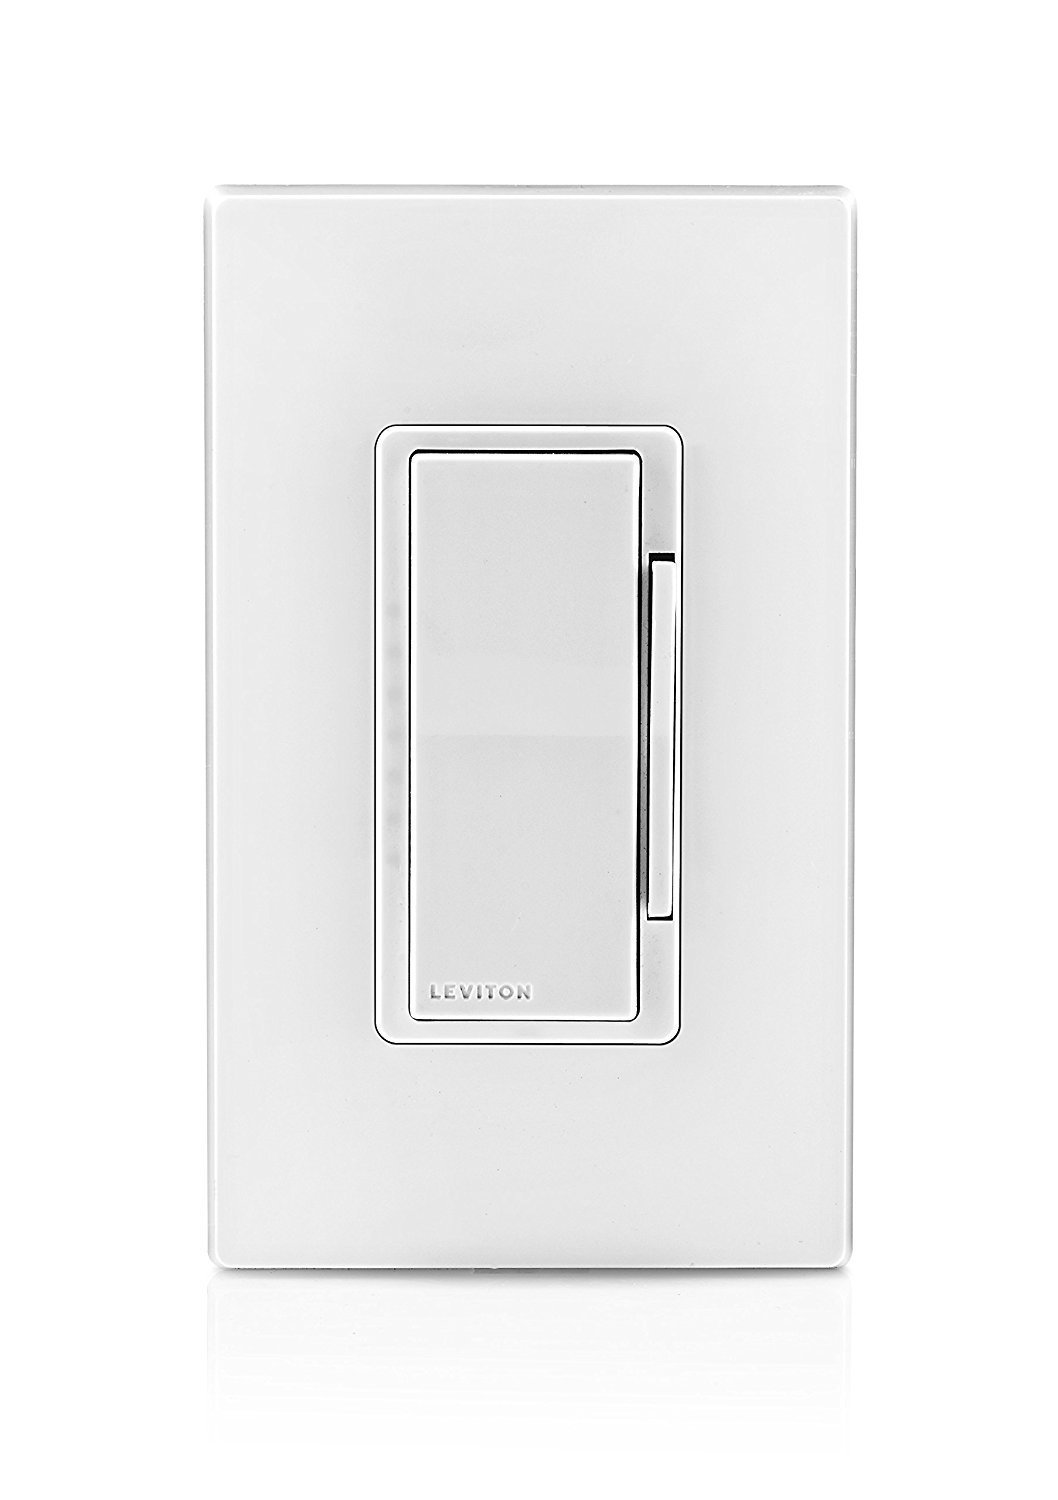 Leviton DZ6HD-1BZ Decora Smart 600W Dimmer with Z-Wave Technology, 10-Pack, White/Light Almond, Works with Amazon Alexa